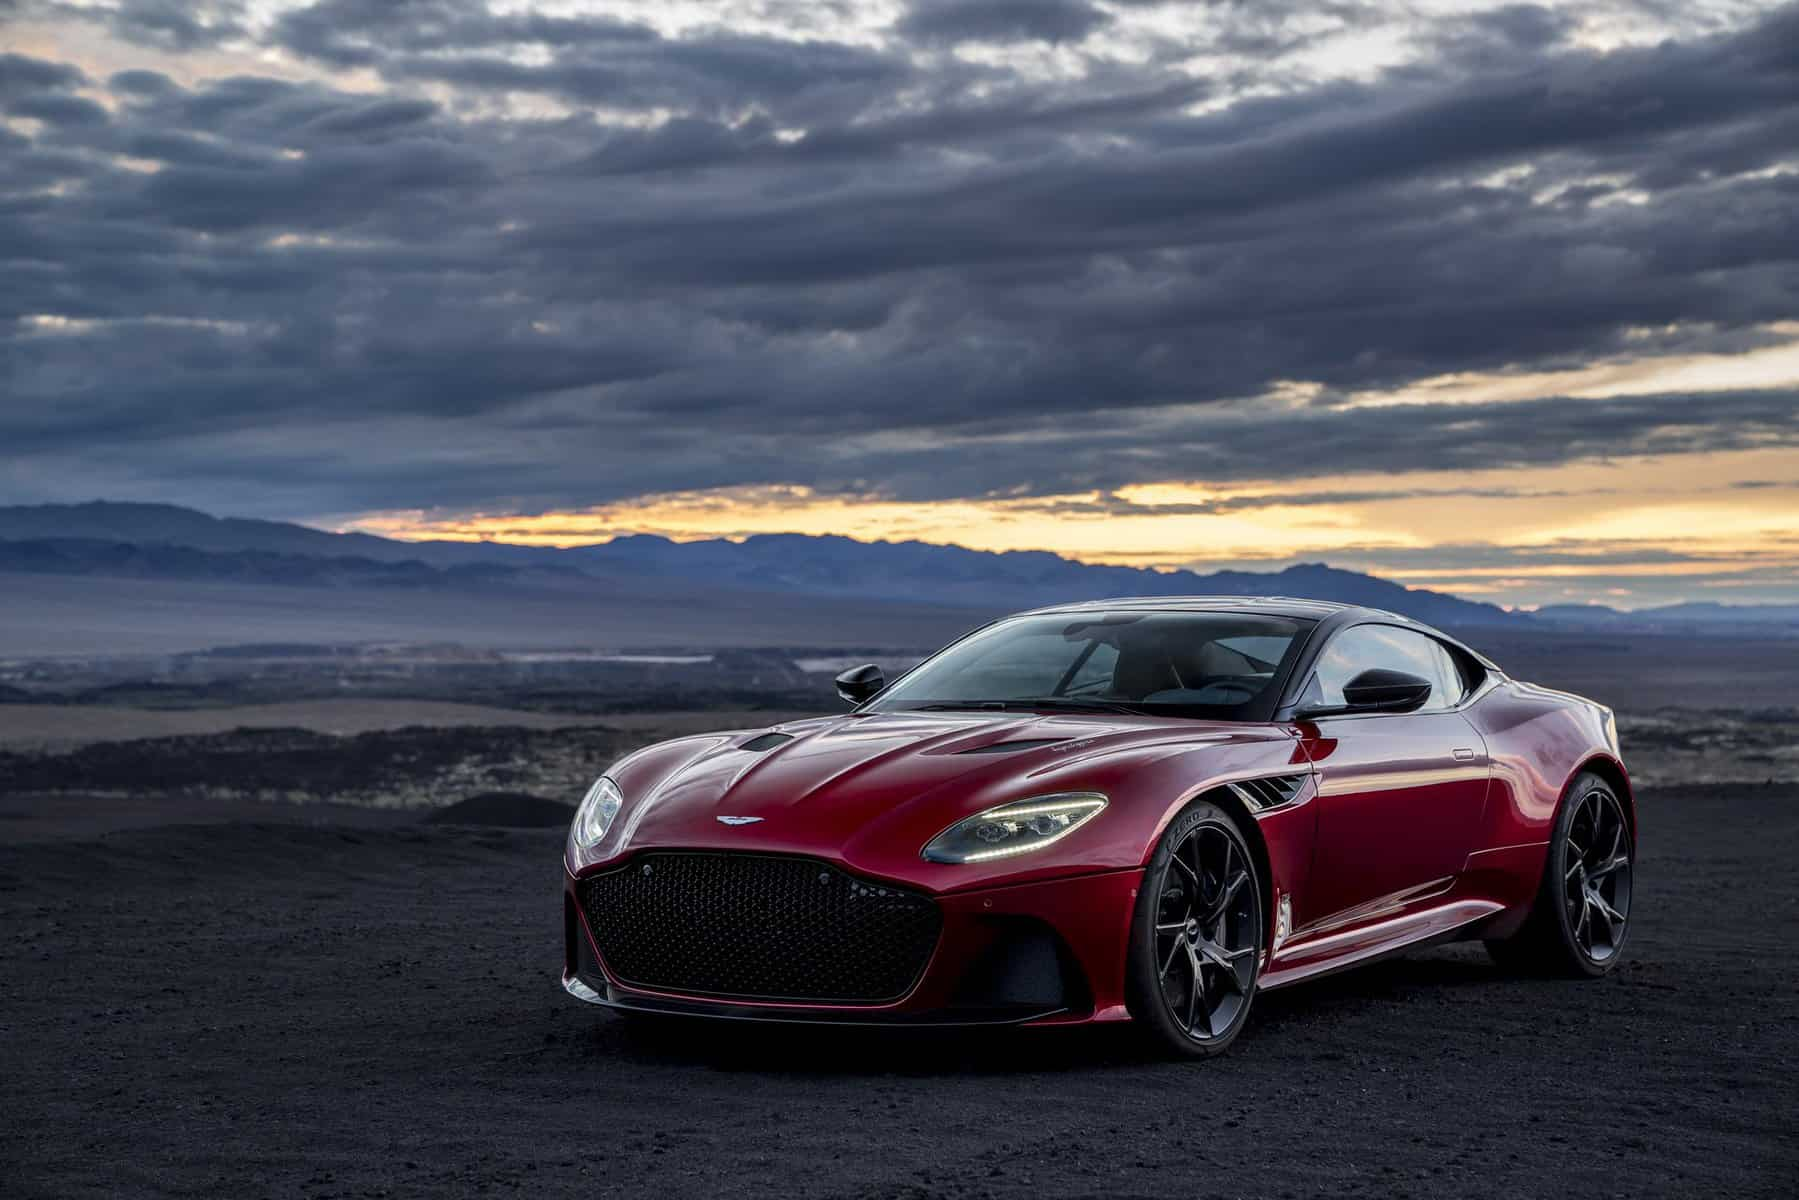 Killer Of Giants: The 2019 Aston Martin DBS Superleggera